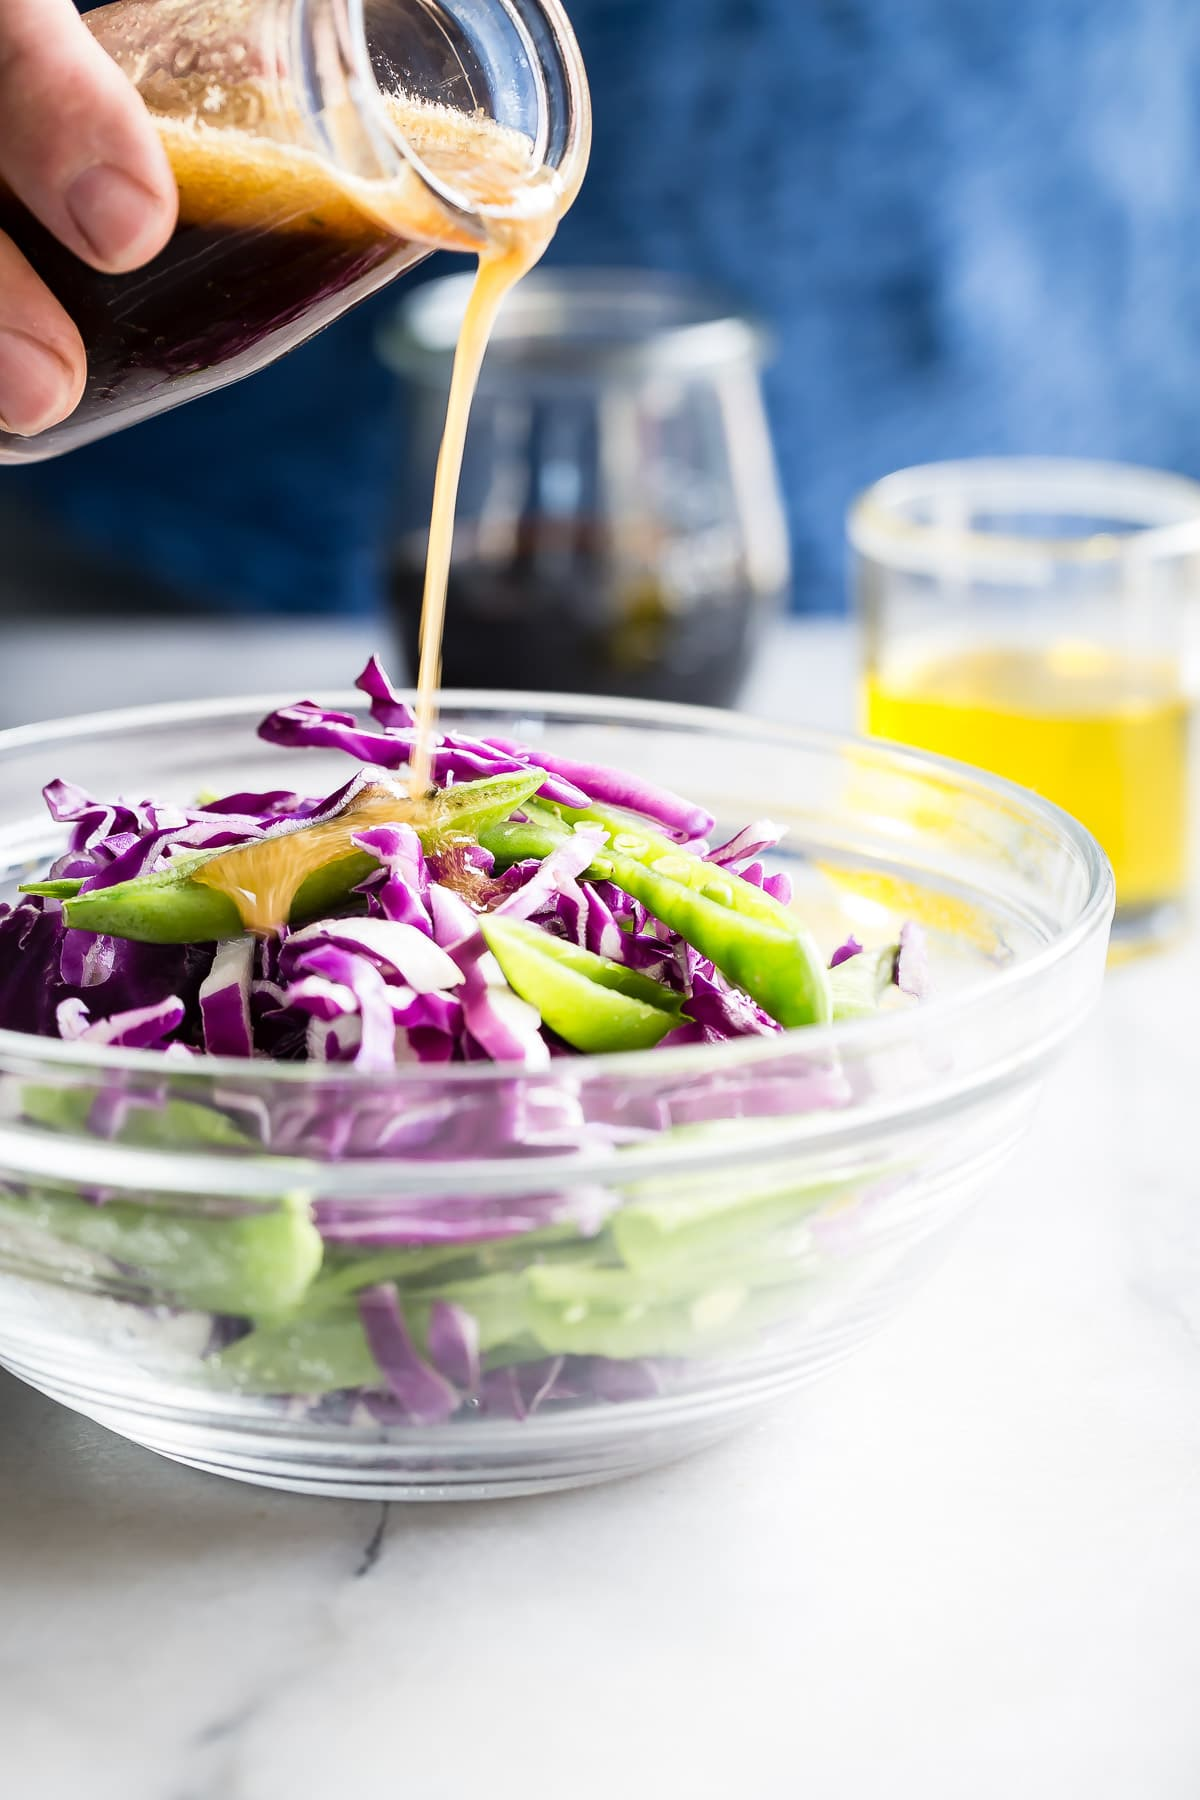 Pouring salad dressing onto coleslaw